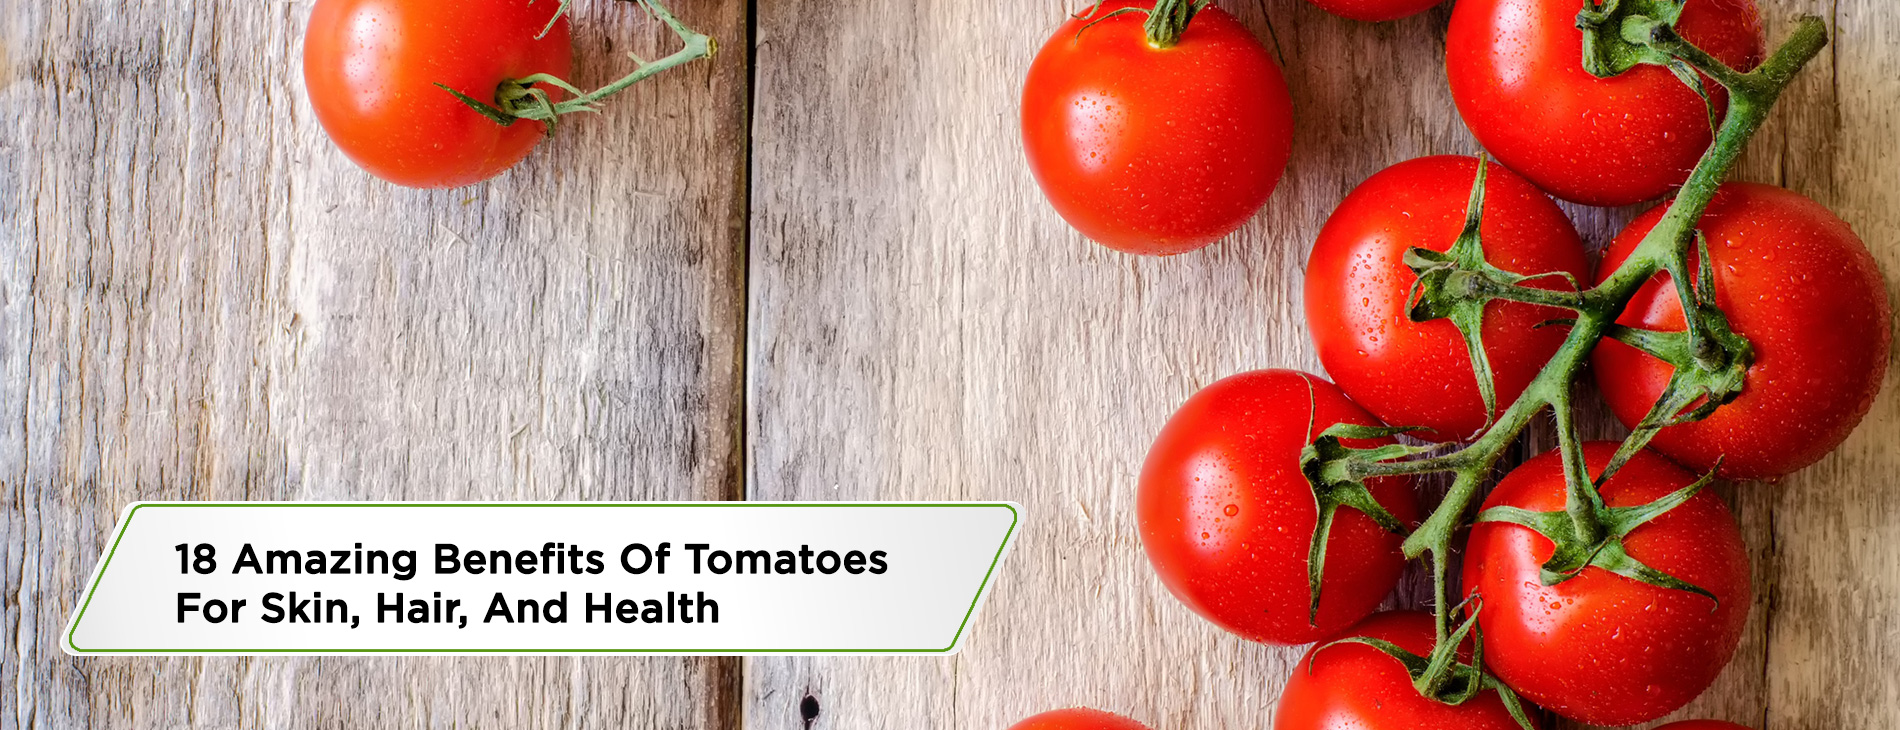 18-Amazing-Benefits-Of-Tomatoes-For-Skin,-Hair,-And-Health